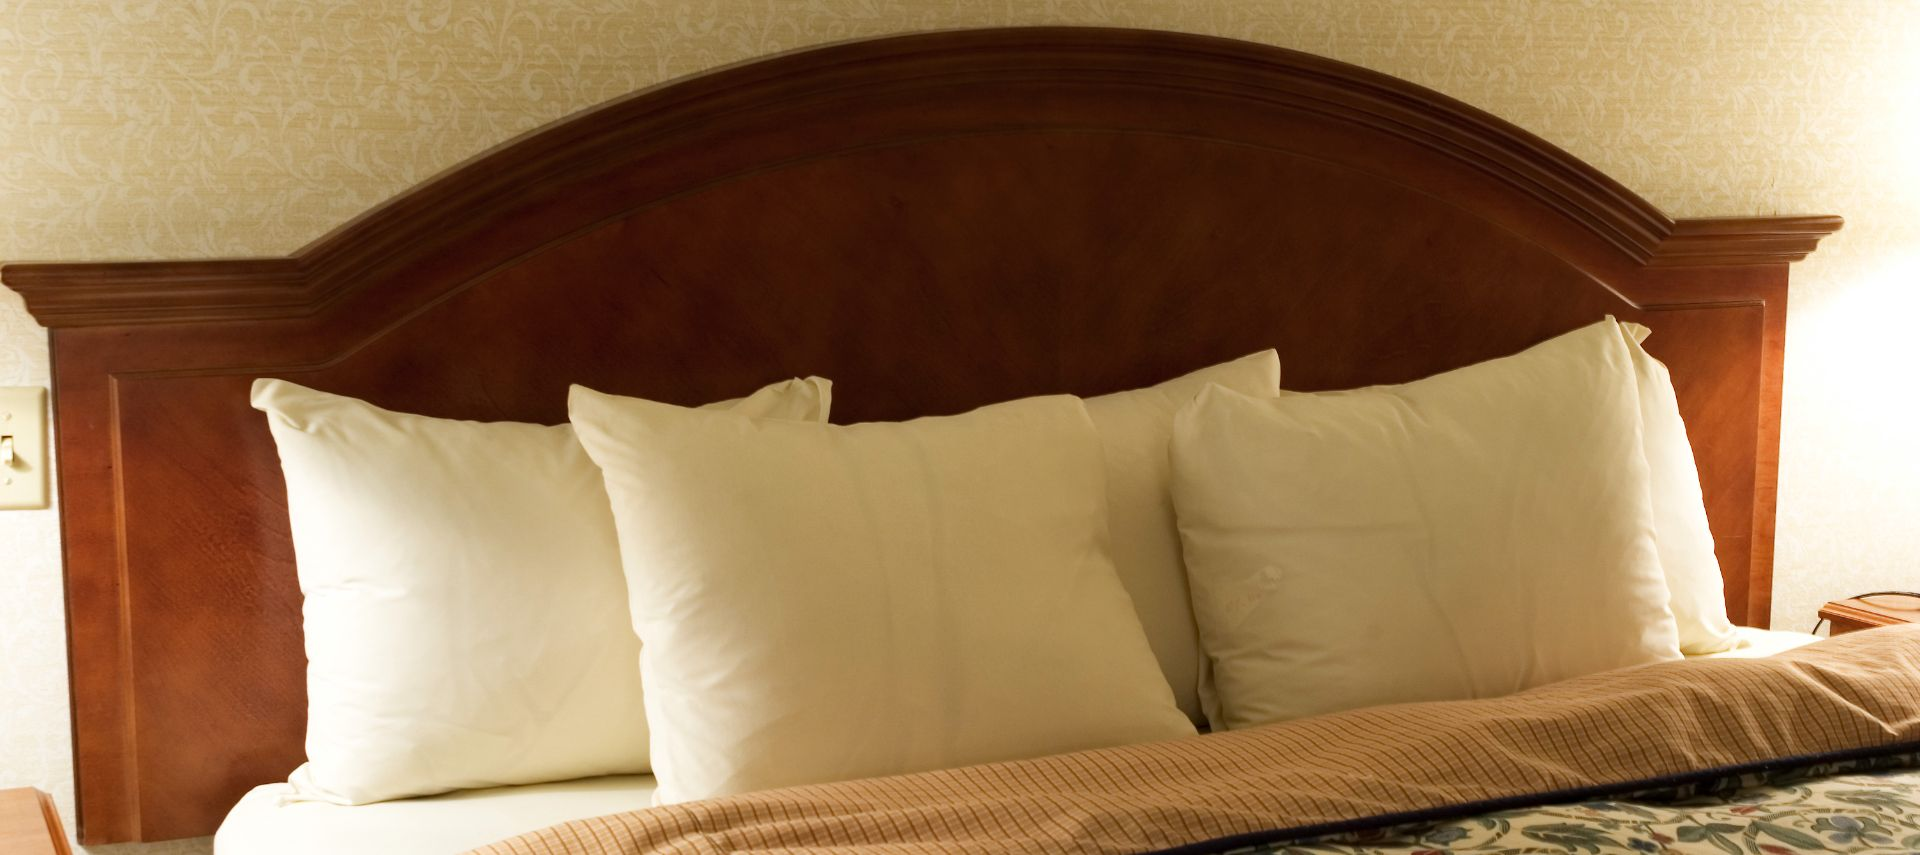 Wooden headboard with several fluffy white pillows